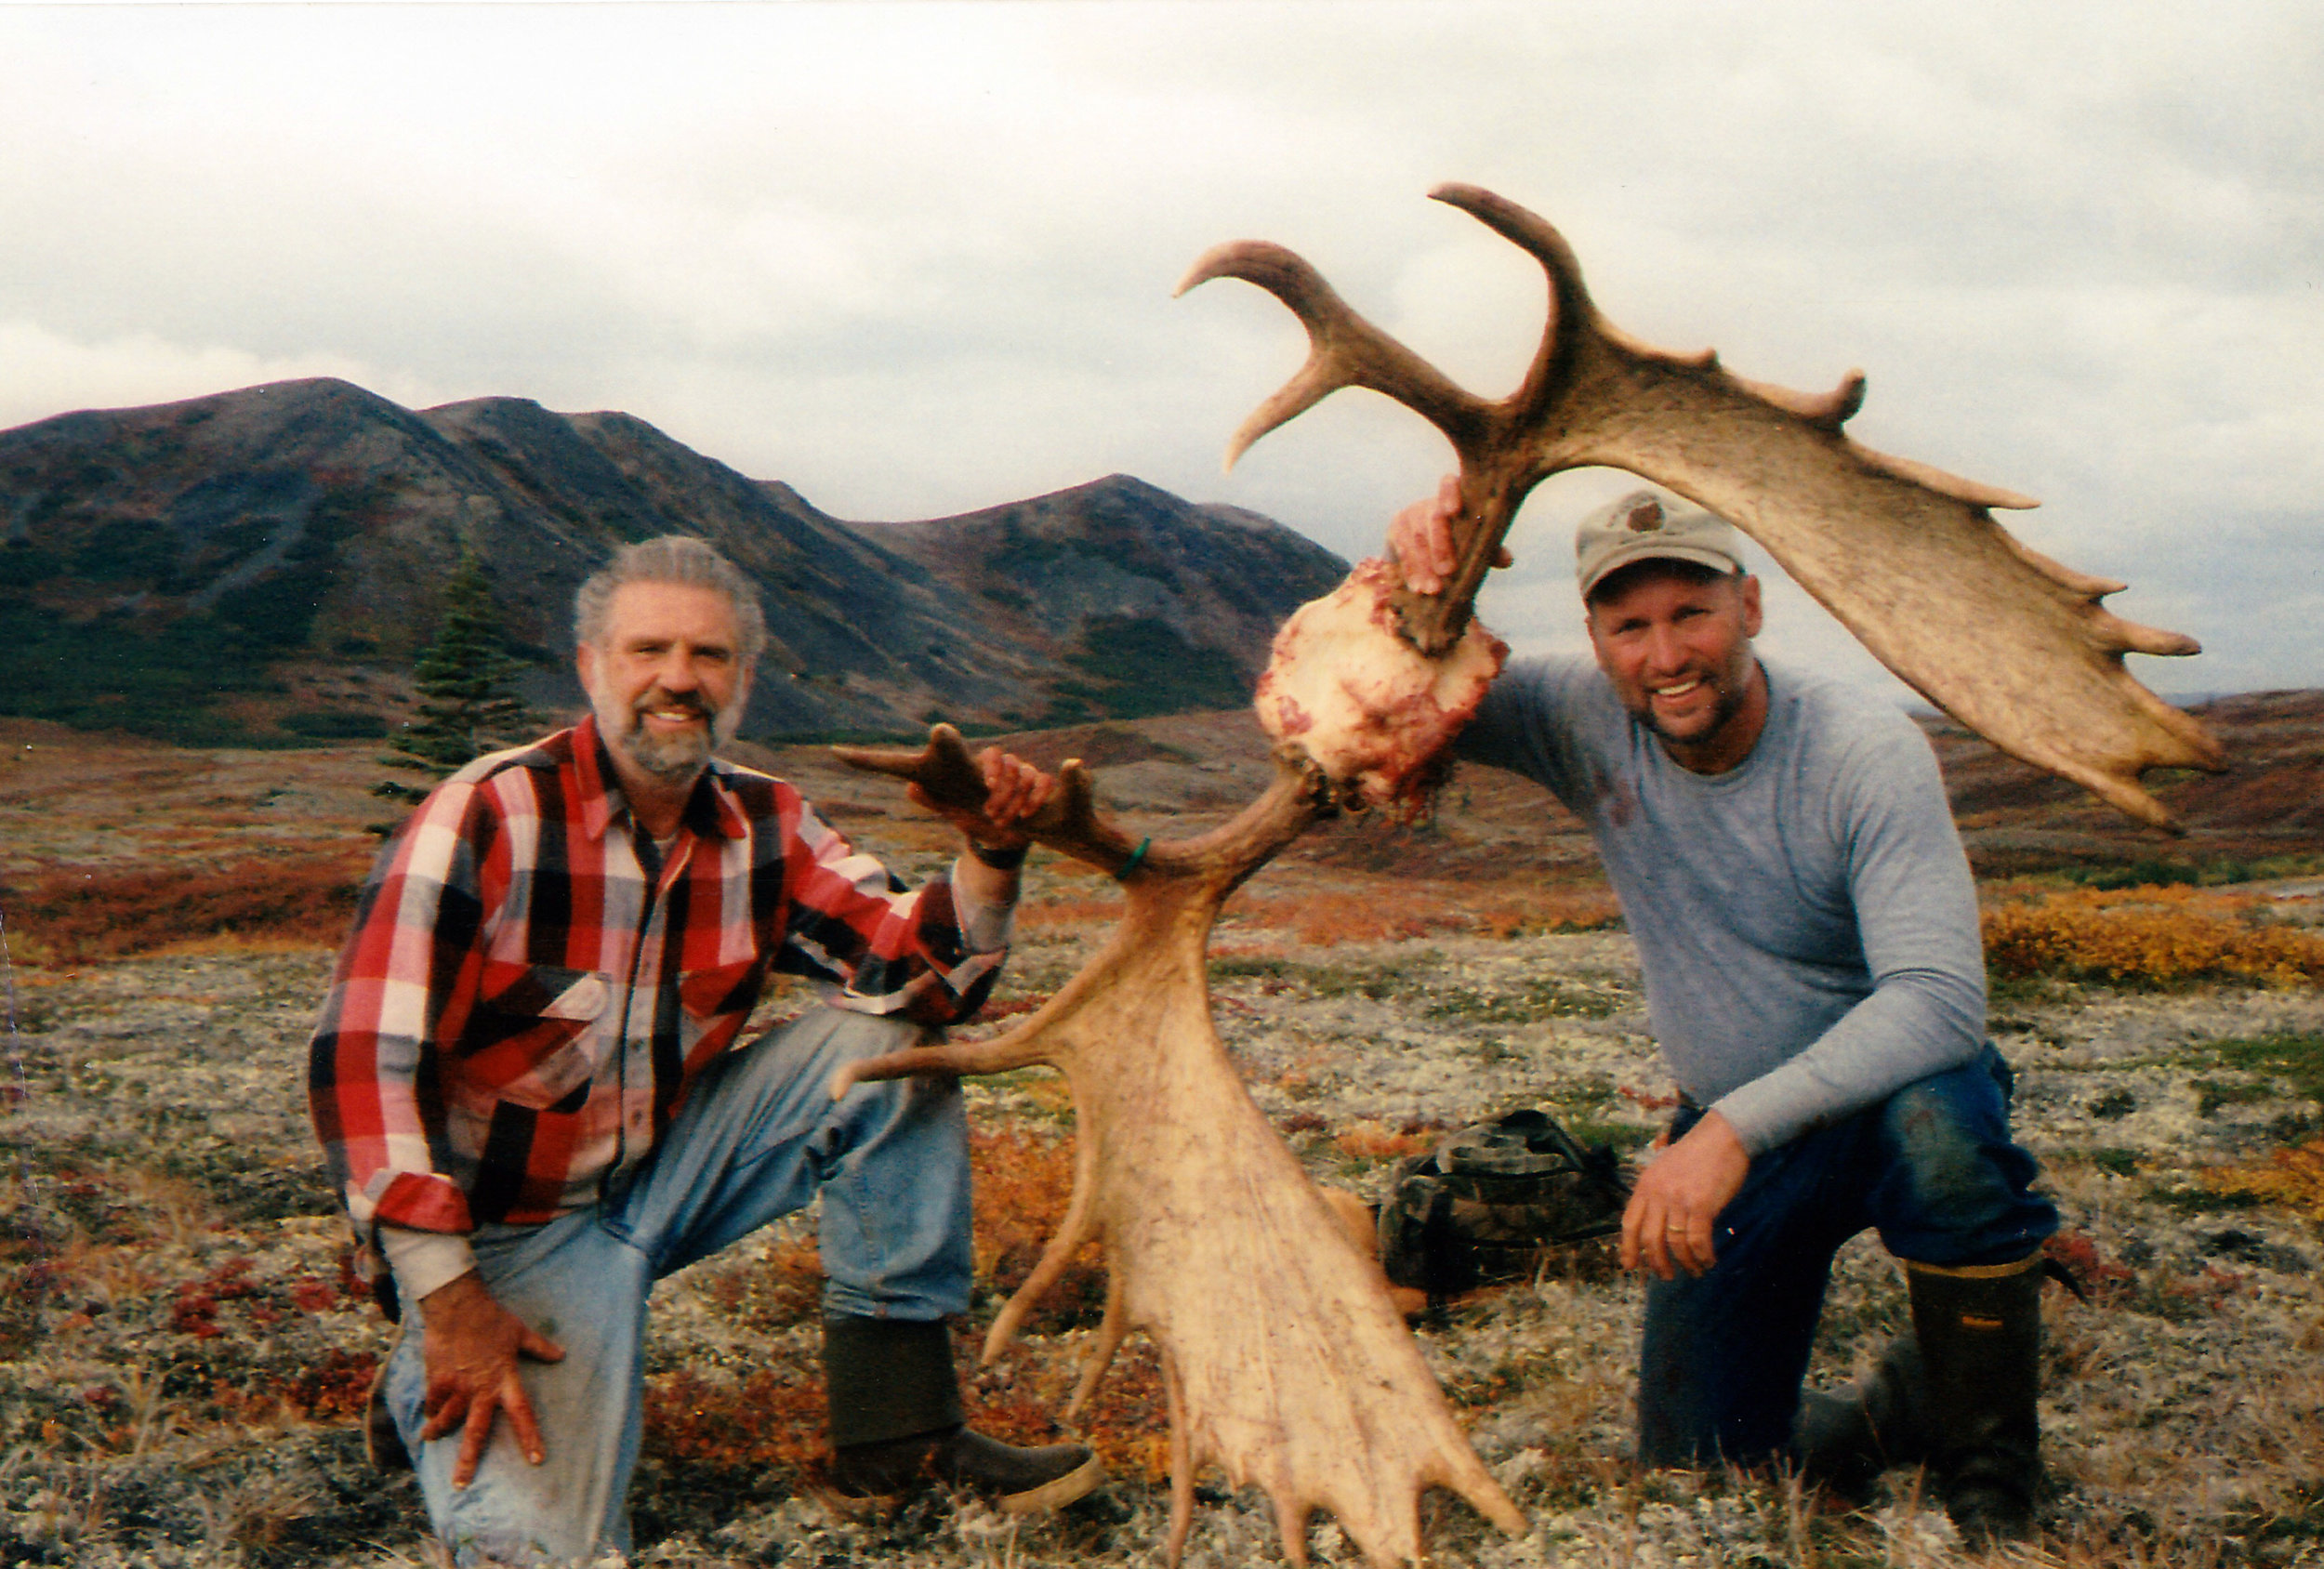 Tom Losk and me with a client's moose antlers after Tom packed them out.